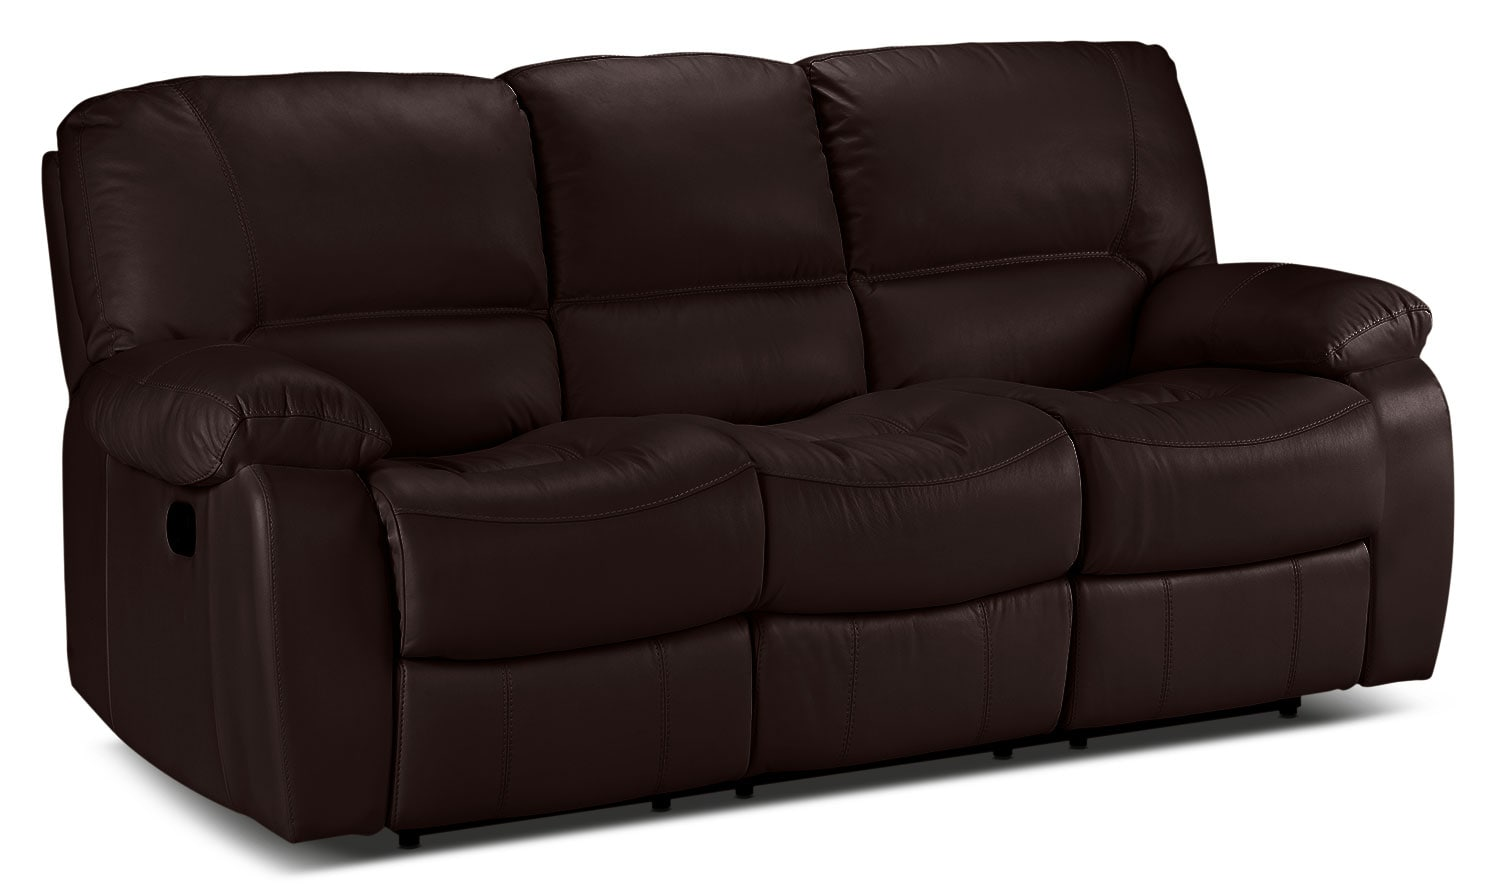 Living Room Furniture - Piermont Reclining Sofa - Chocolate